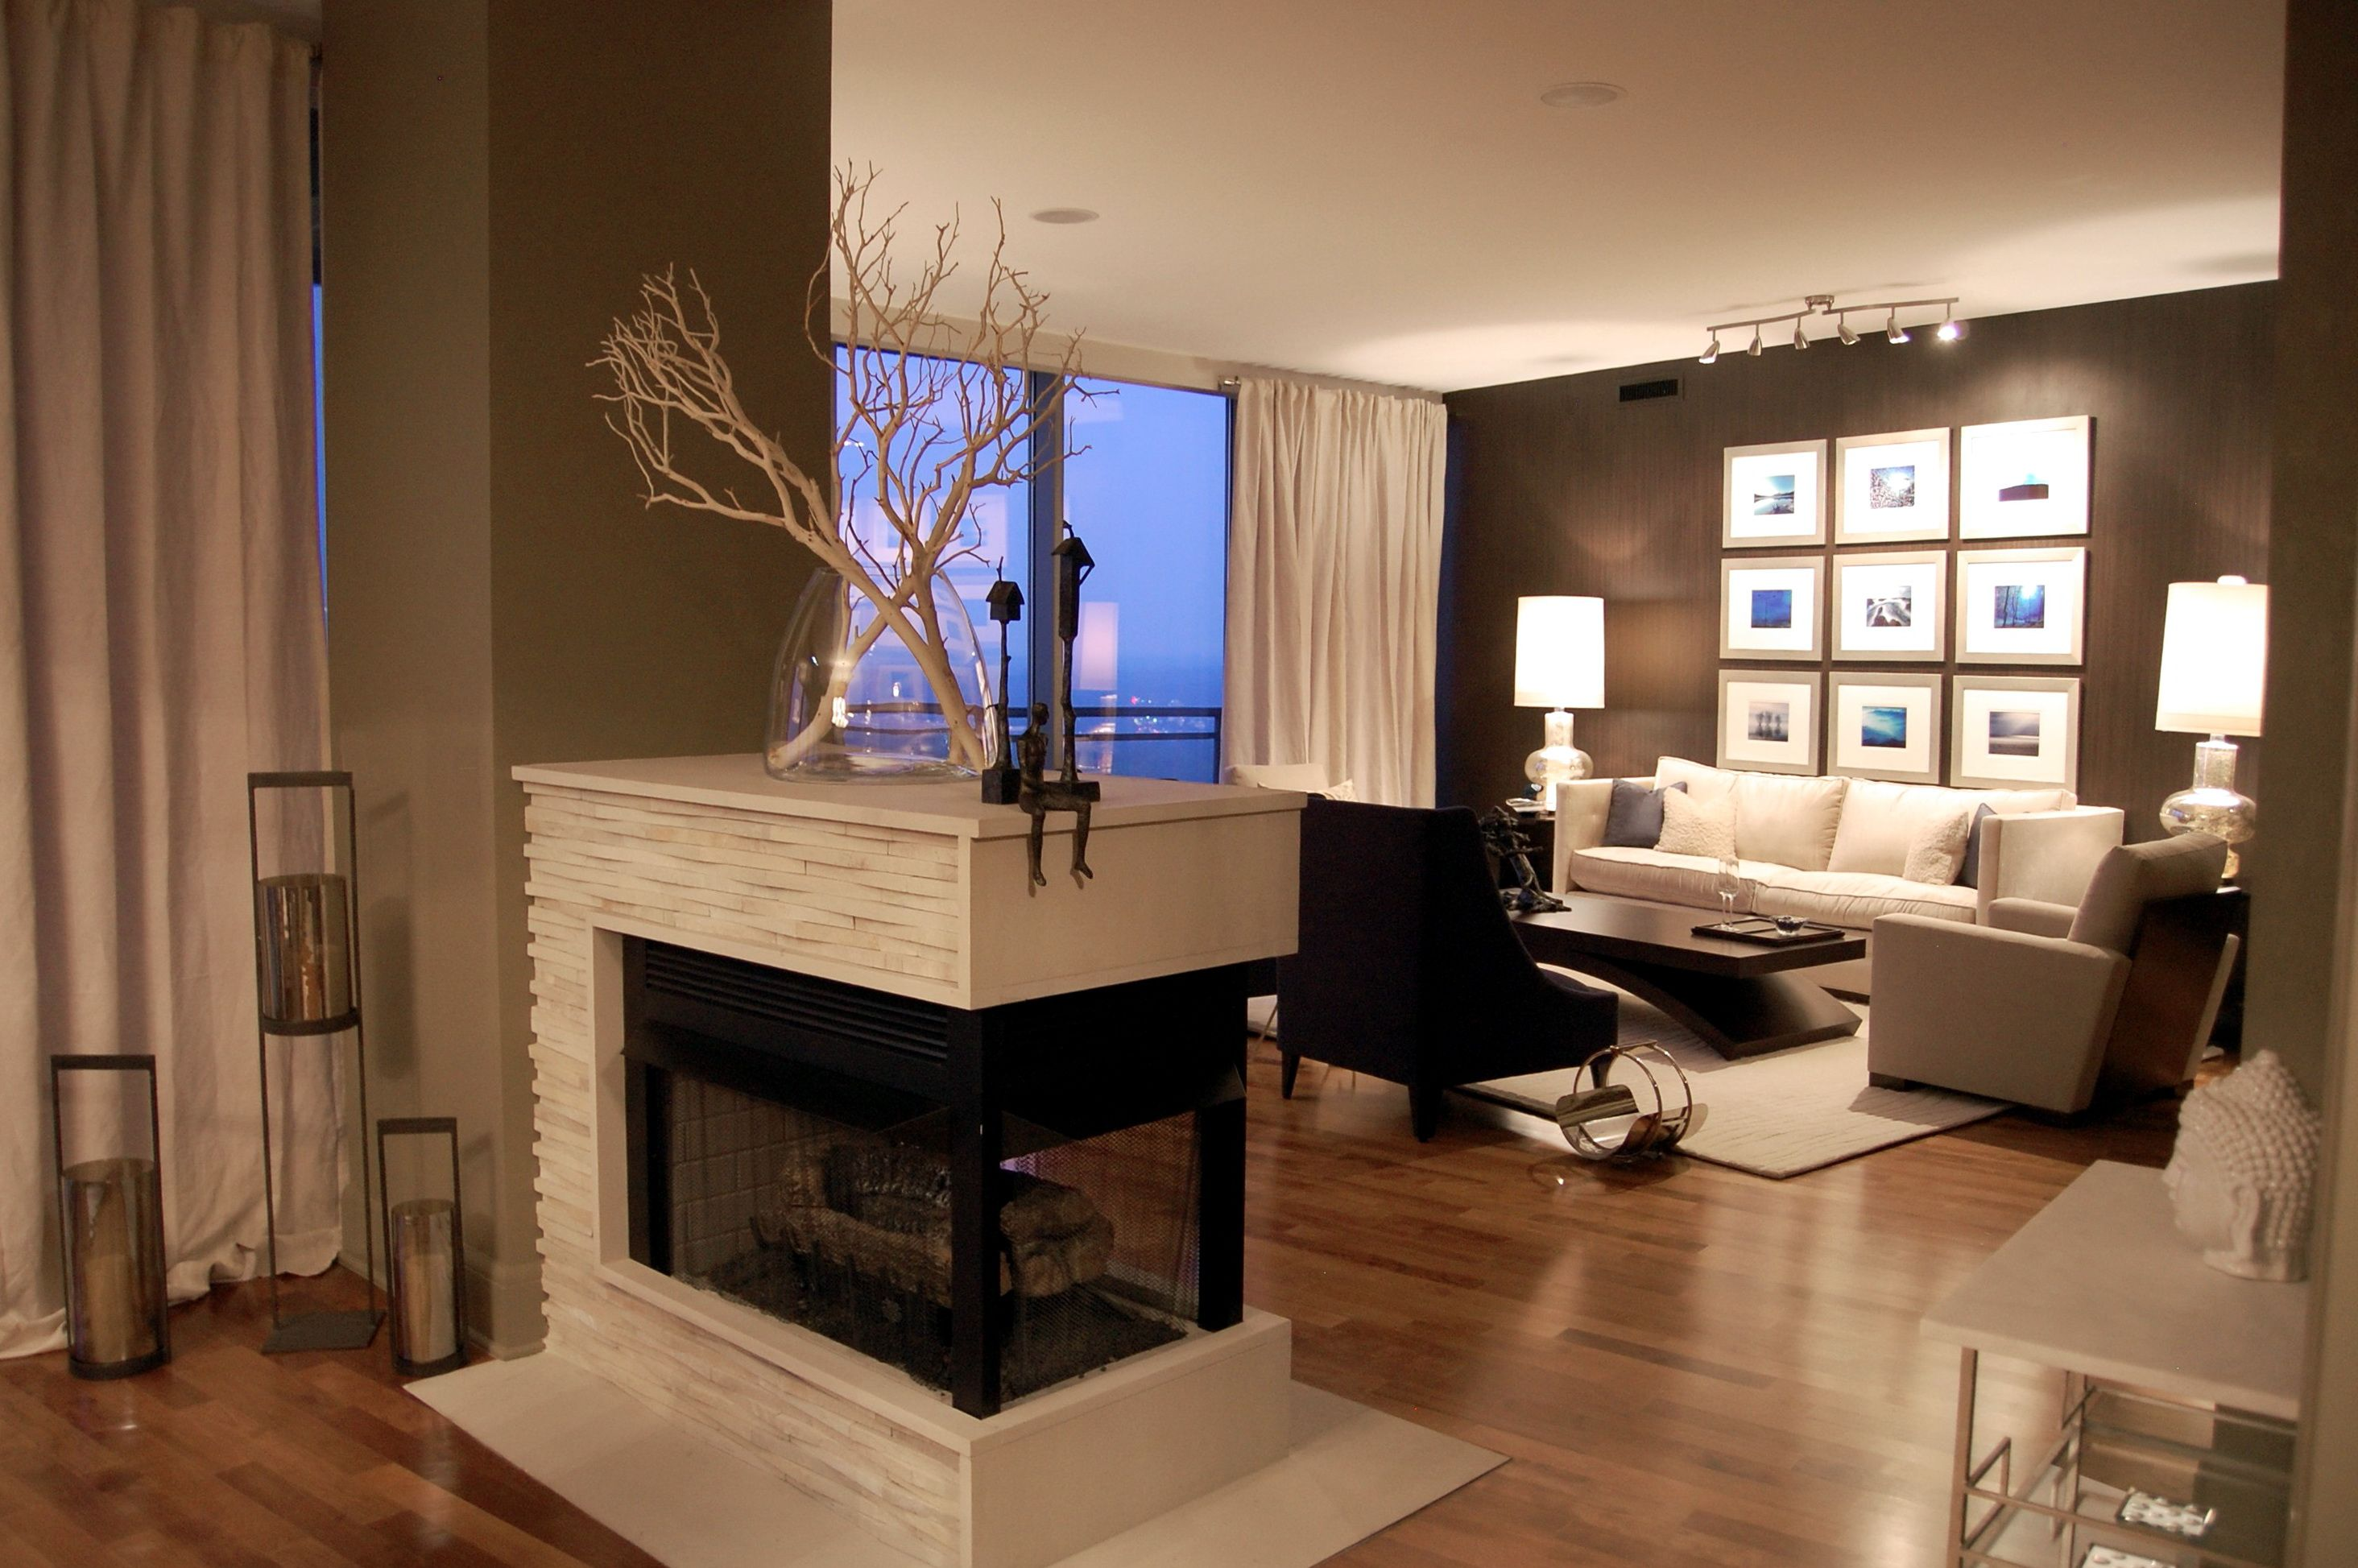 3 Sided Fireplace Insert  | Ideas for the House ...